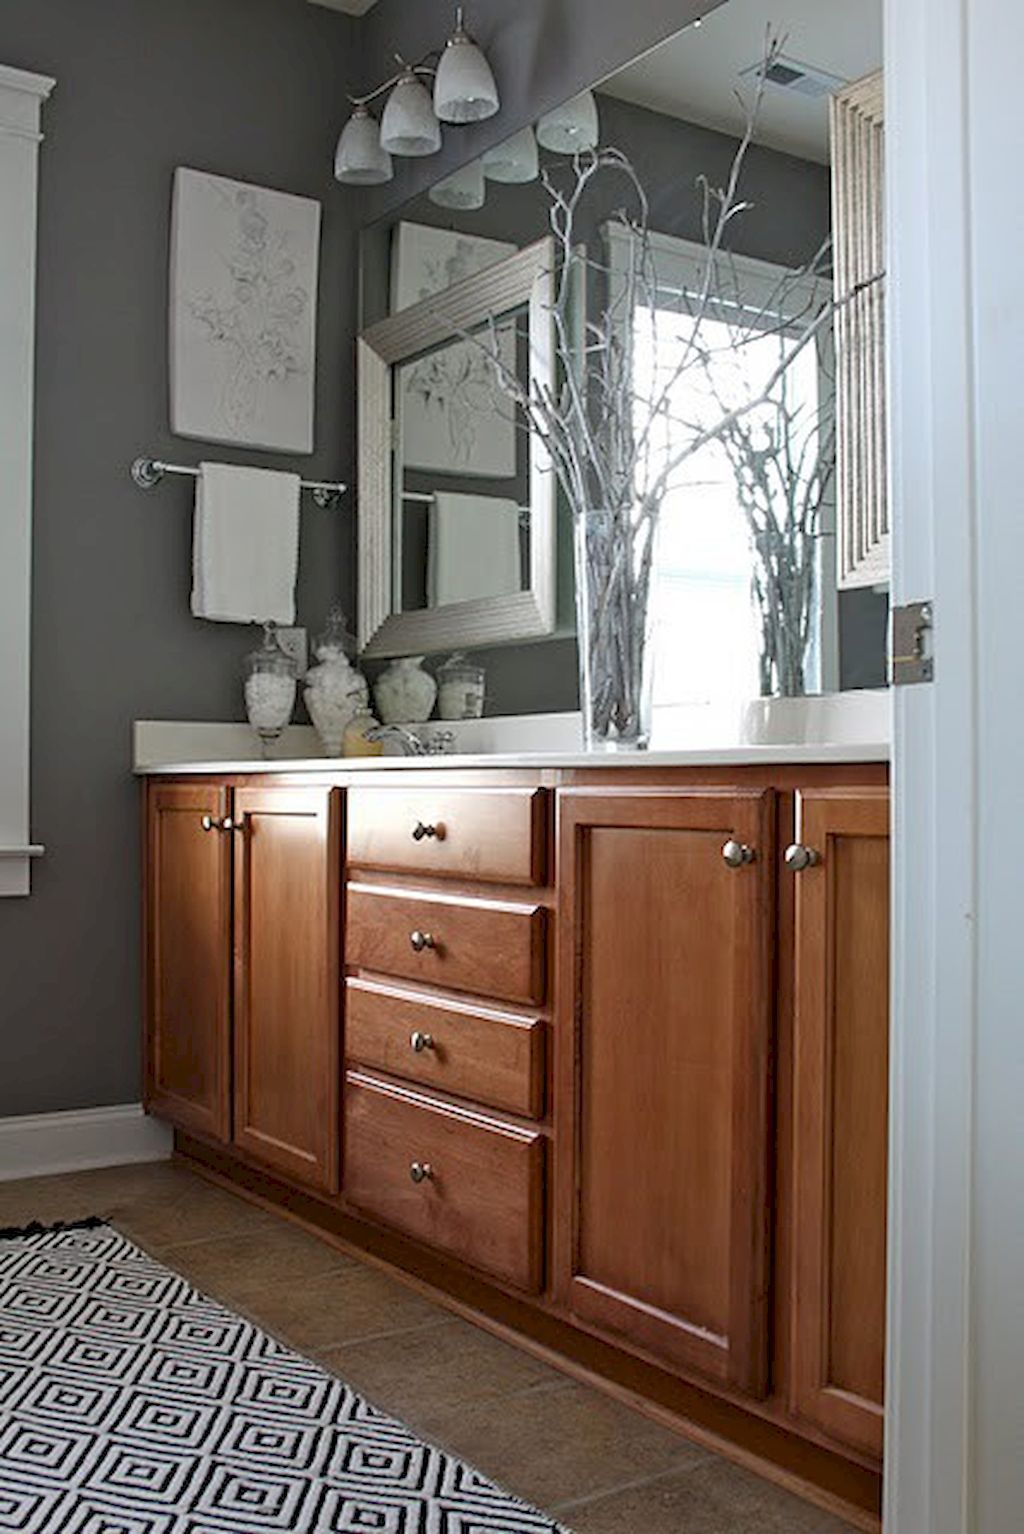 100 best oak kitchen cabinets ideas decoration for on top 10 interior paint brands id=69341